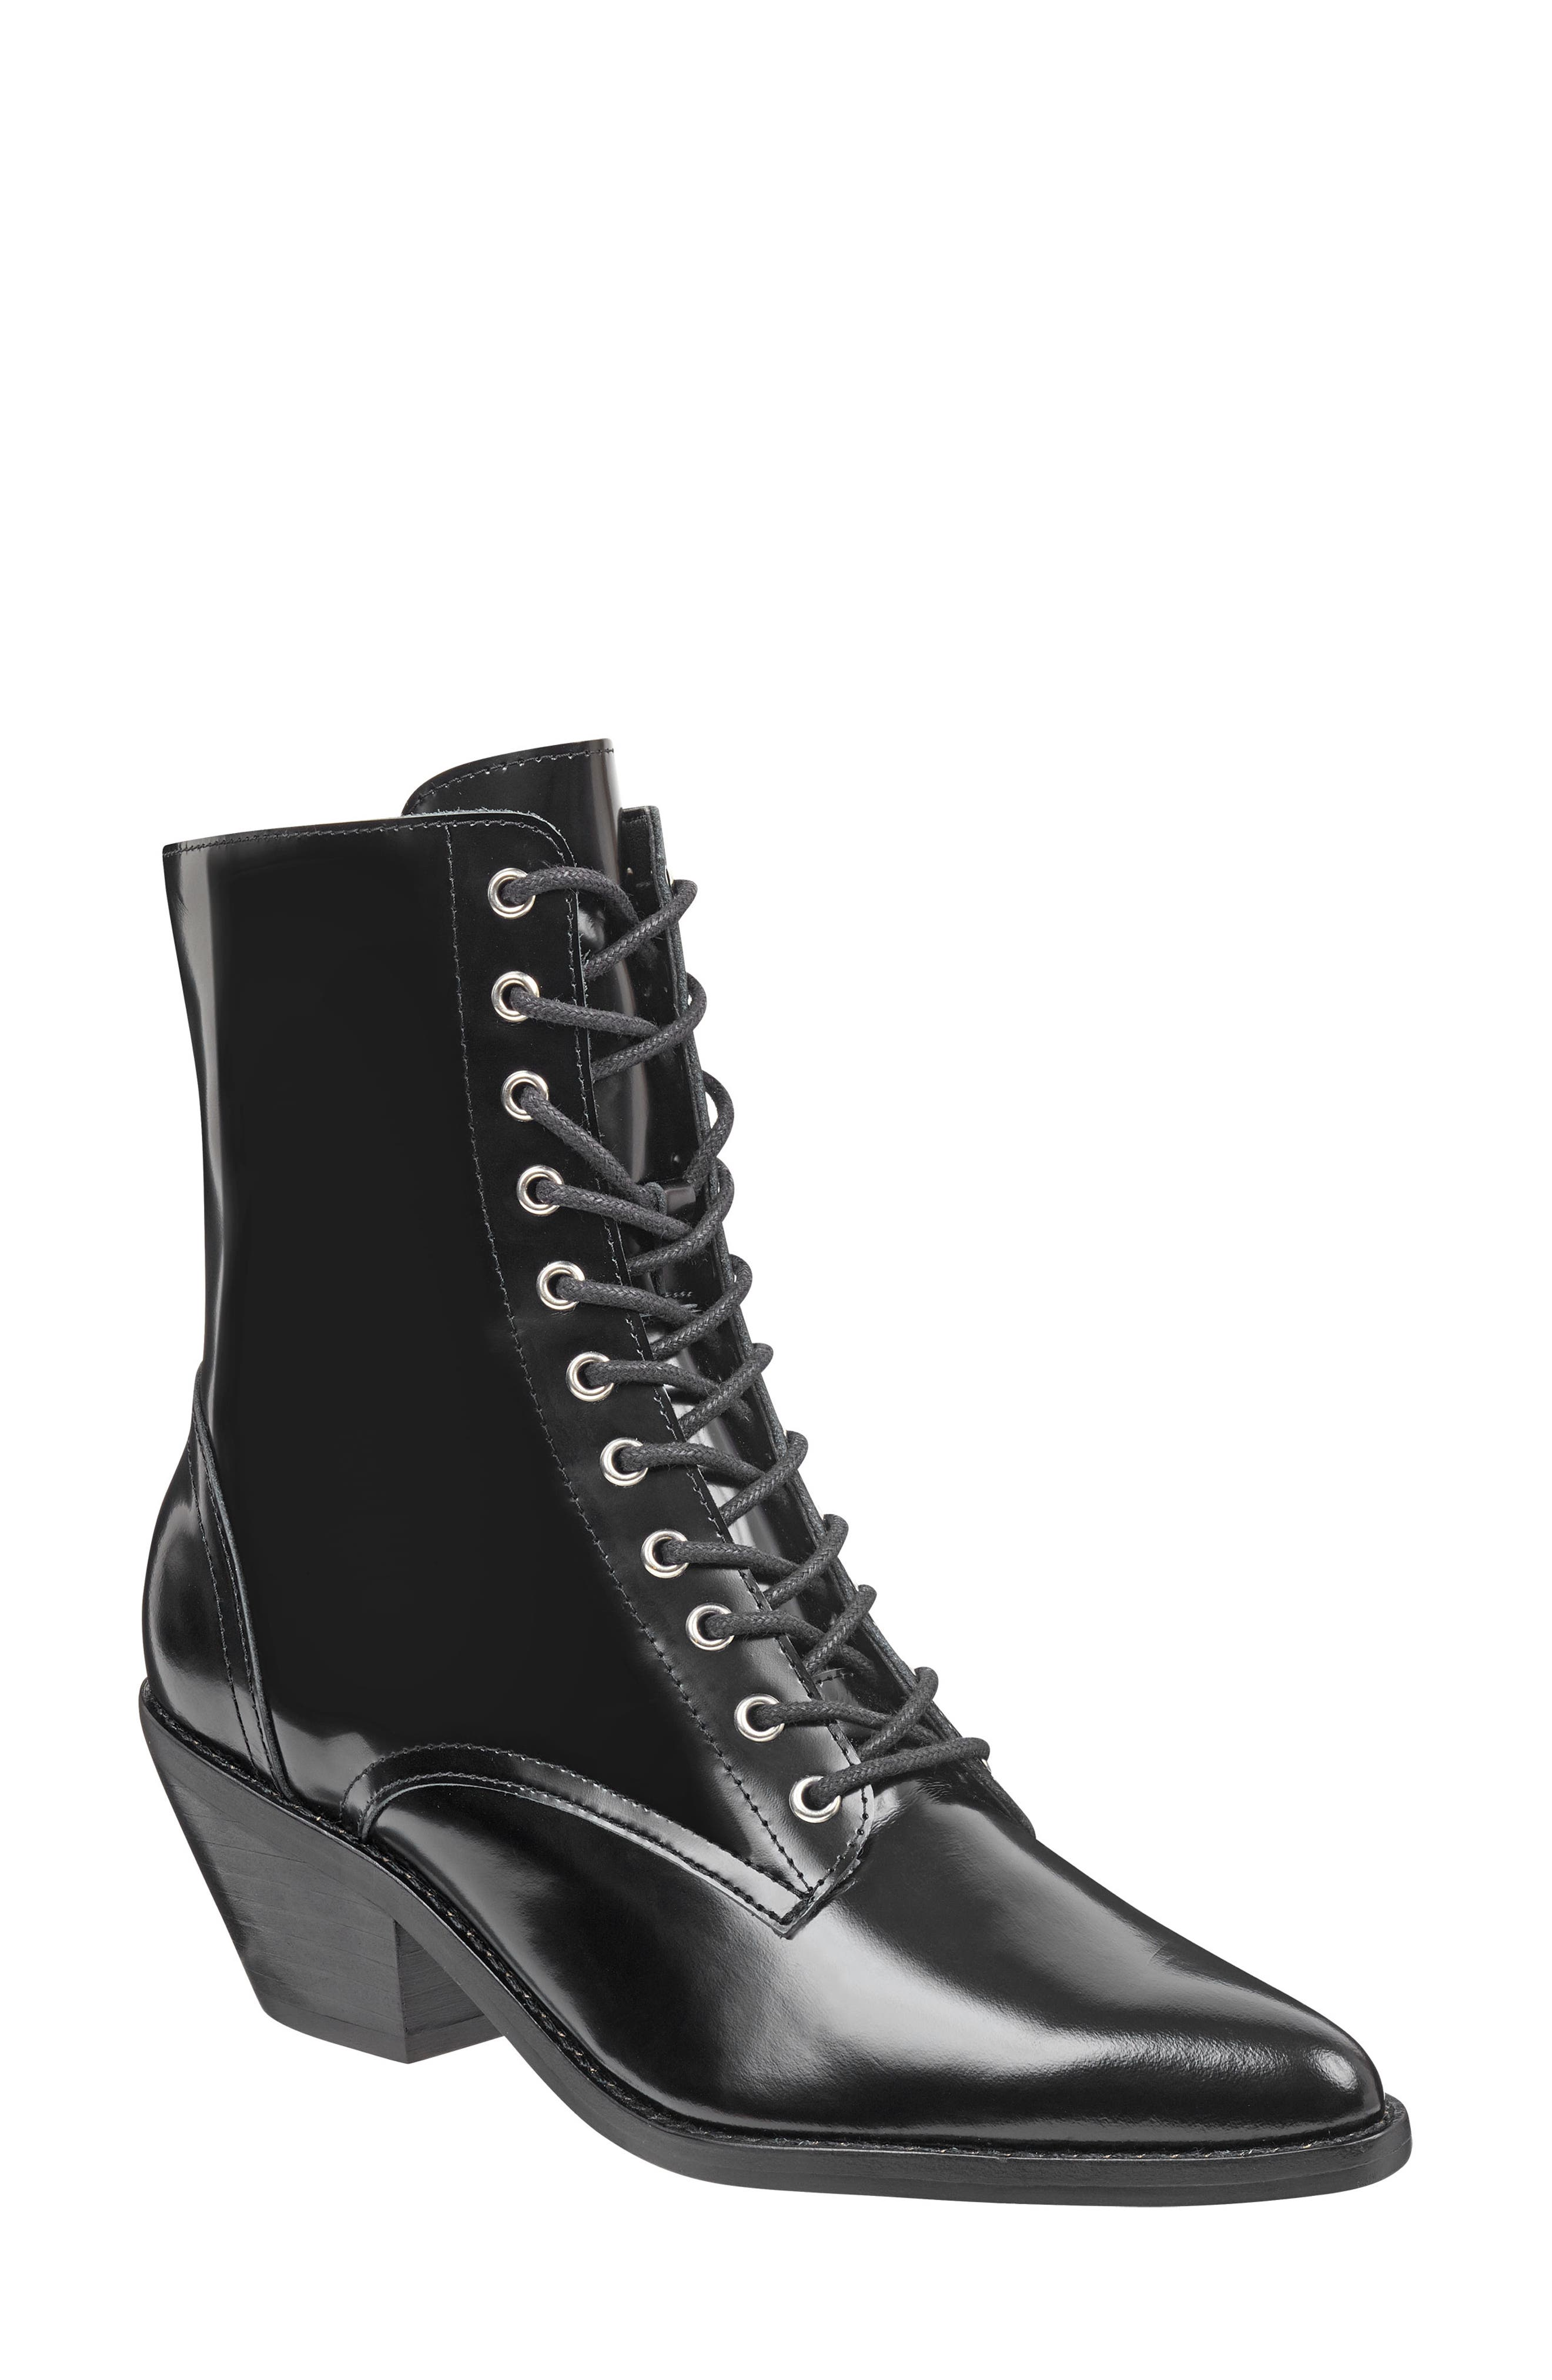 Marc Fisher Ltd Bowie Lace-Up Boot- Black